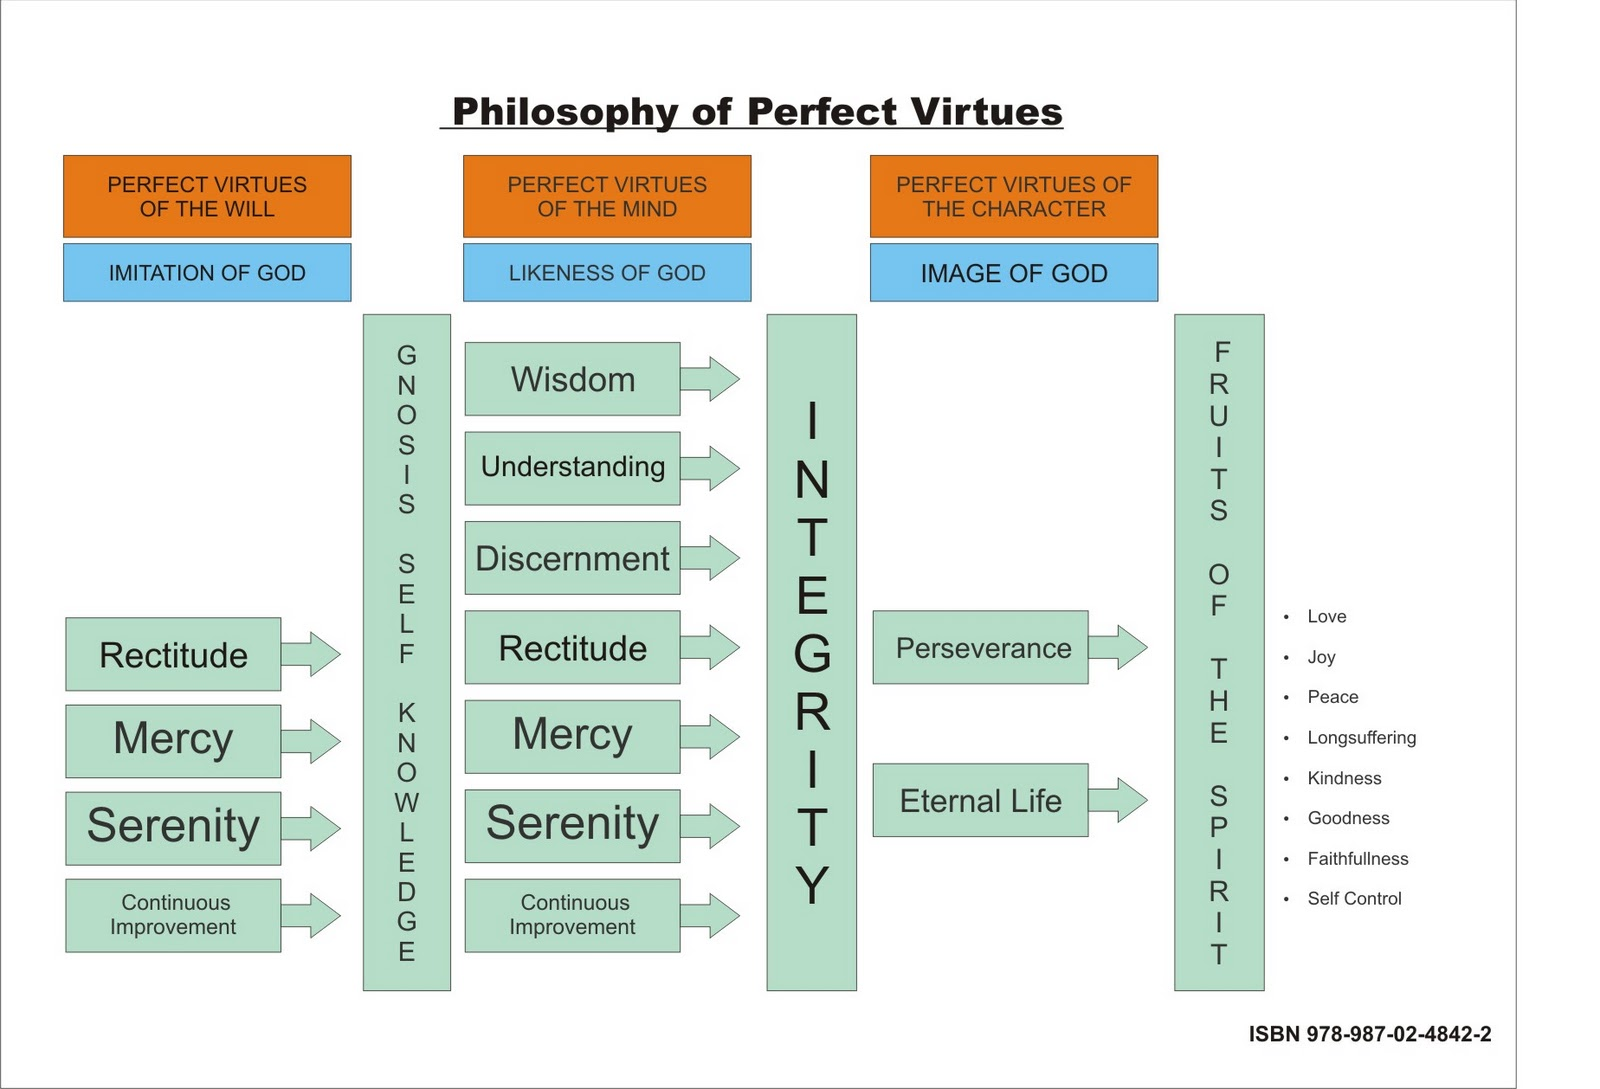 definition types and virtues of honesty Honesty is a facet of moral character that connotes positive and virtuous attributes such as integrity, truthfulness, straightforwardness, including straightforwardness of conduct, along with the absence of lying, cheating, theft, etc honesty also involves being trustworthy,.